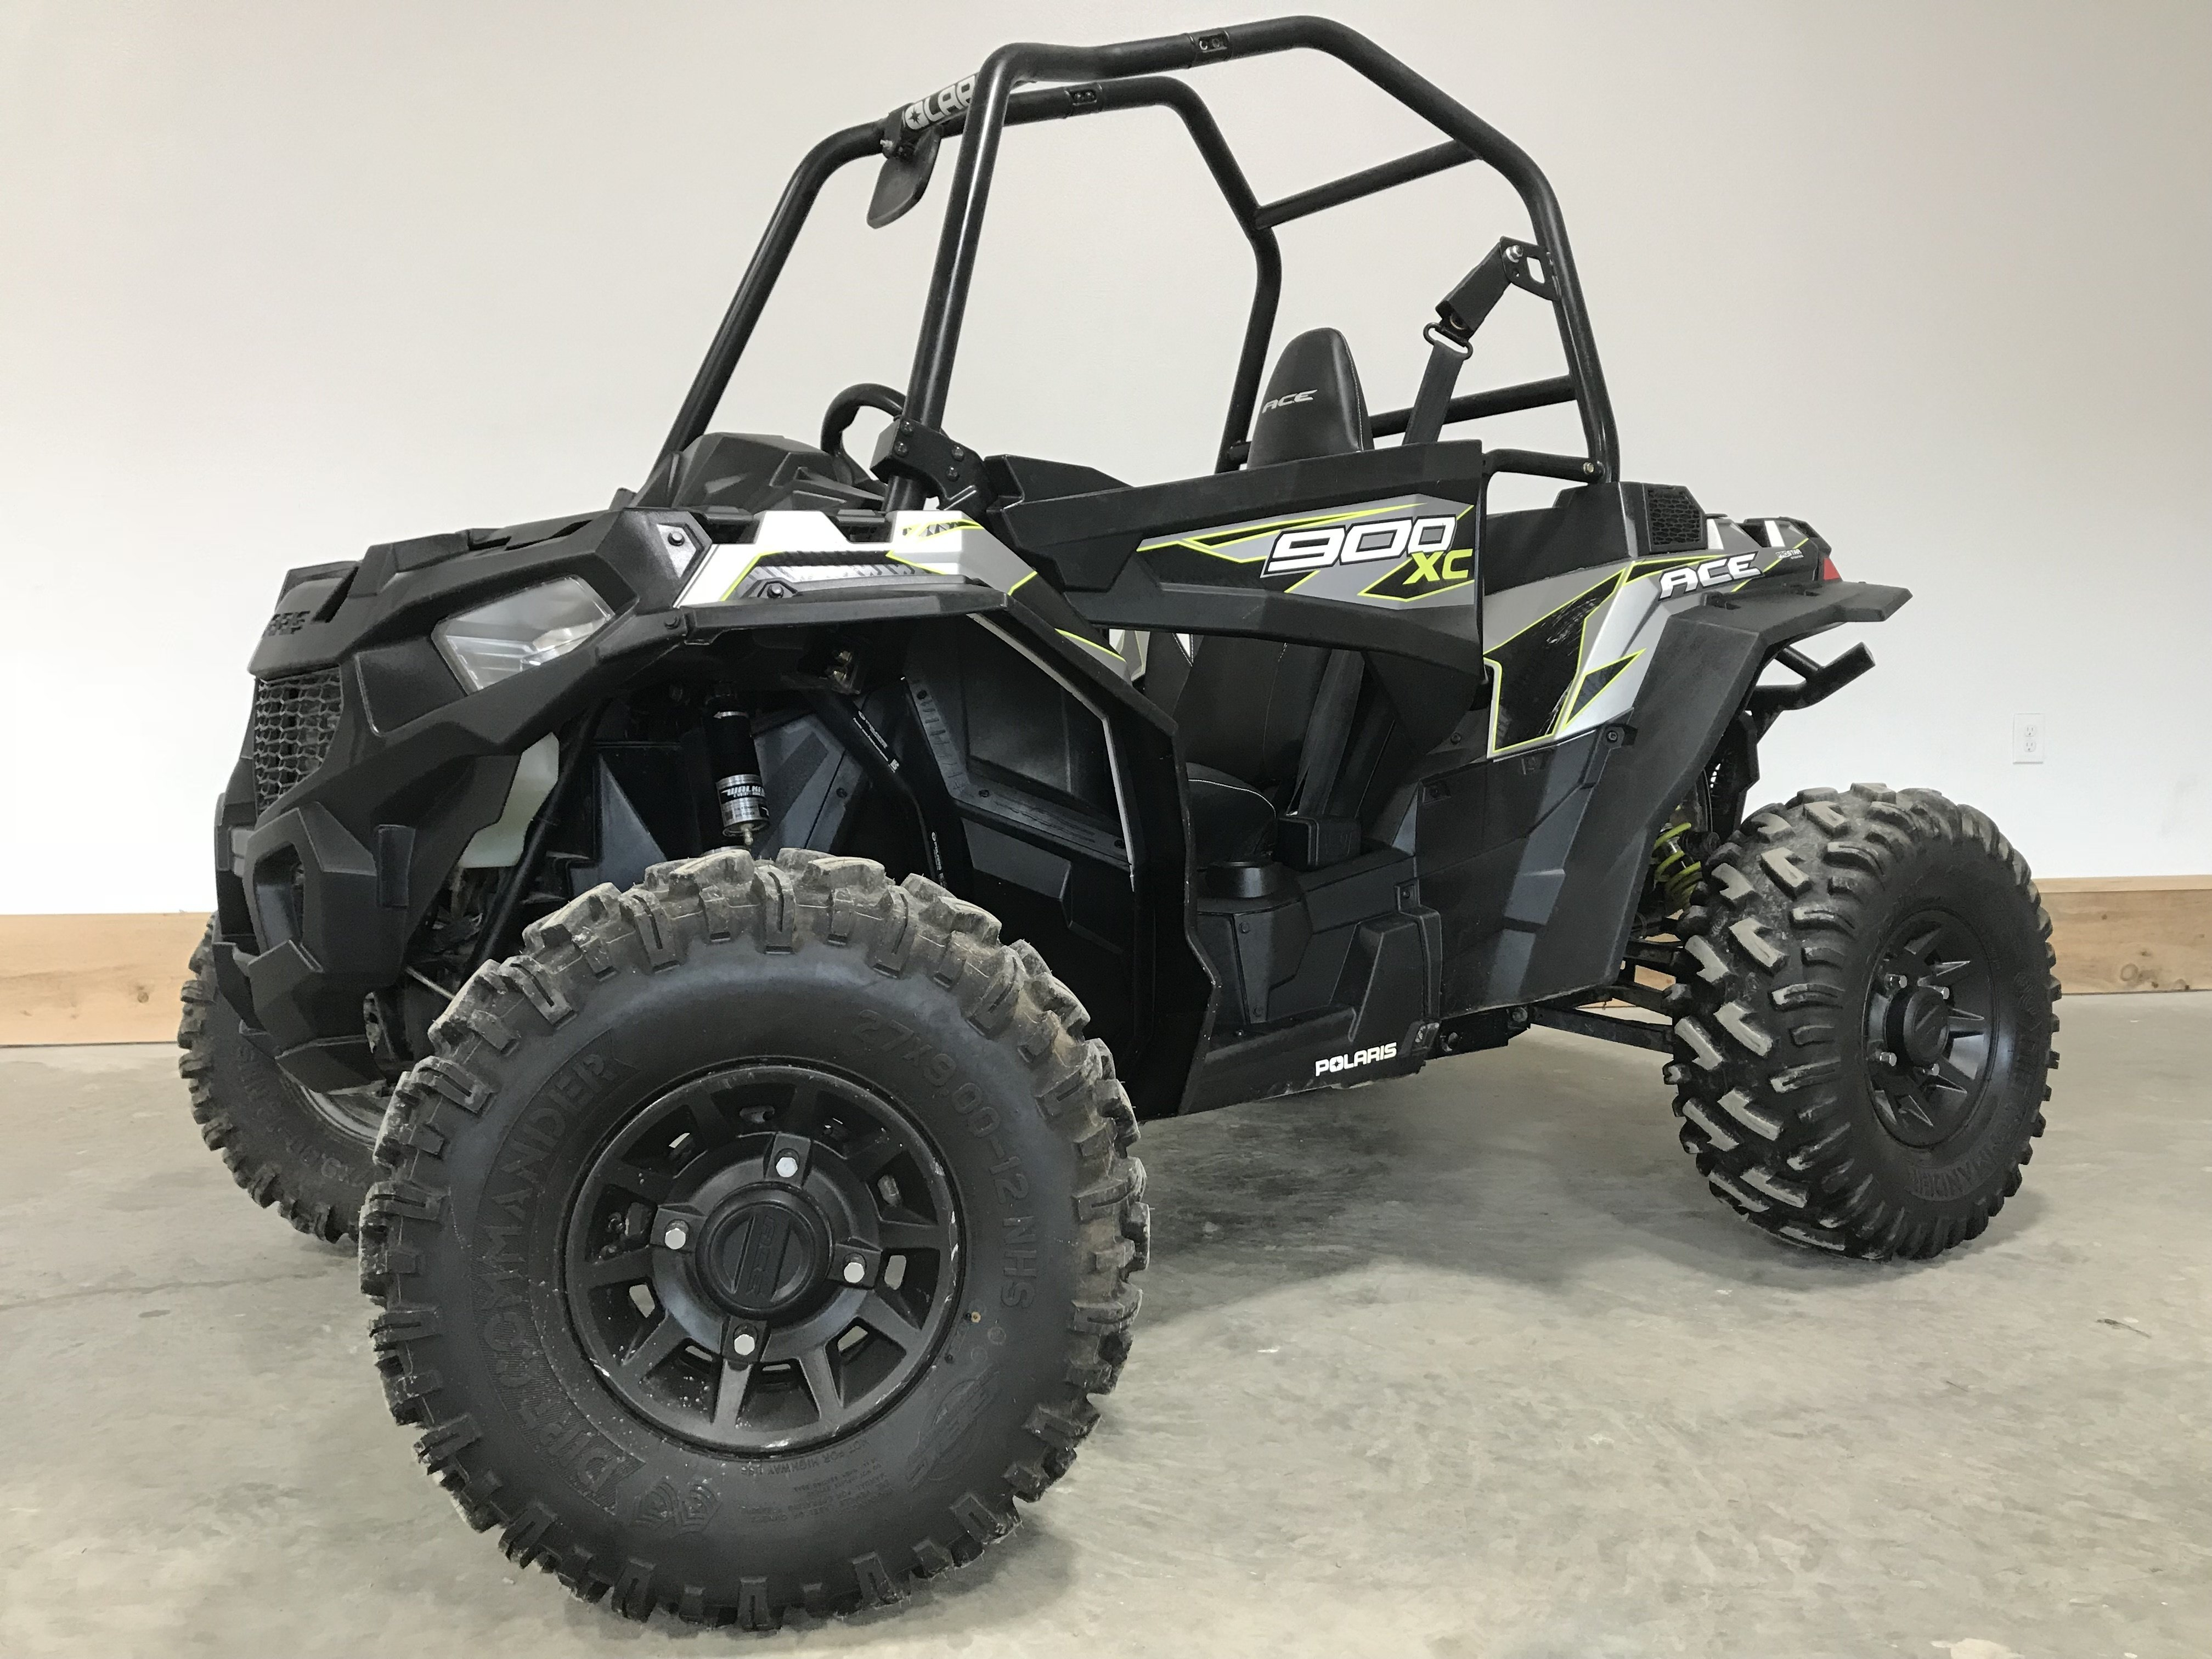 2017 Polaris Ace 900 XC EPS 79458